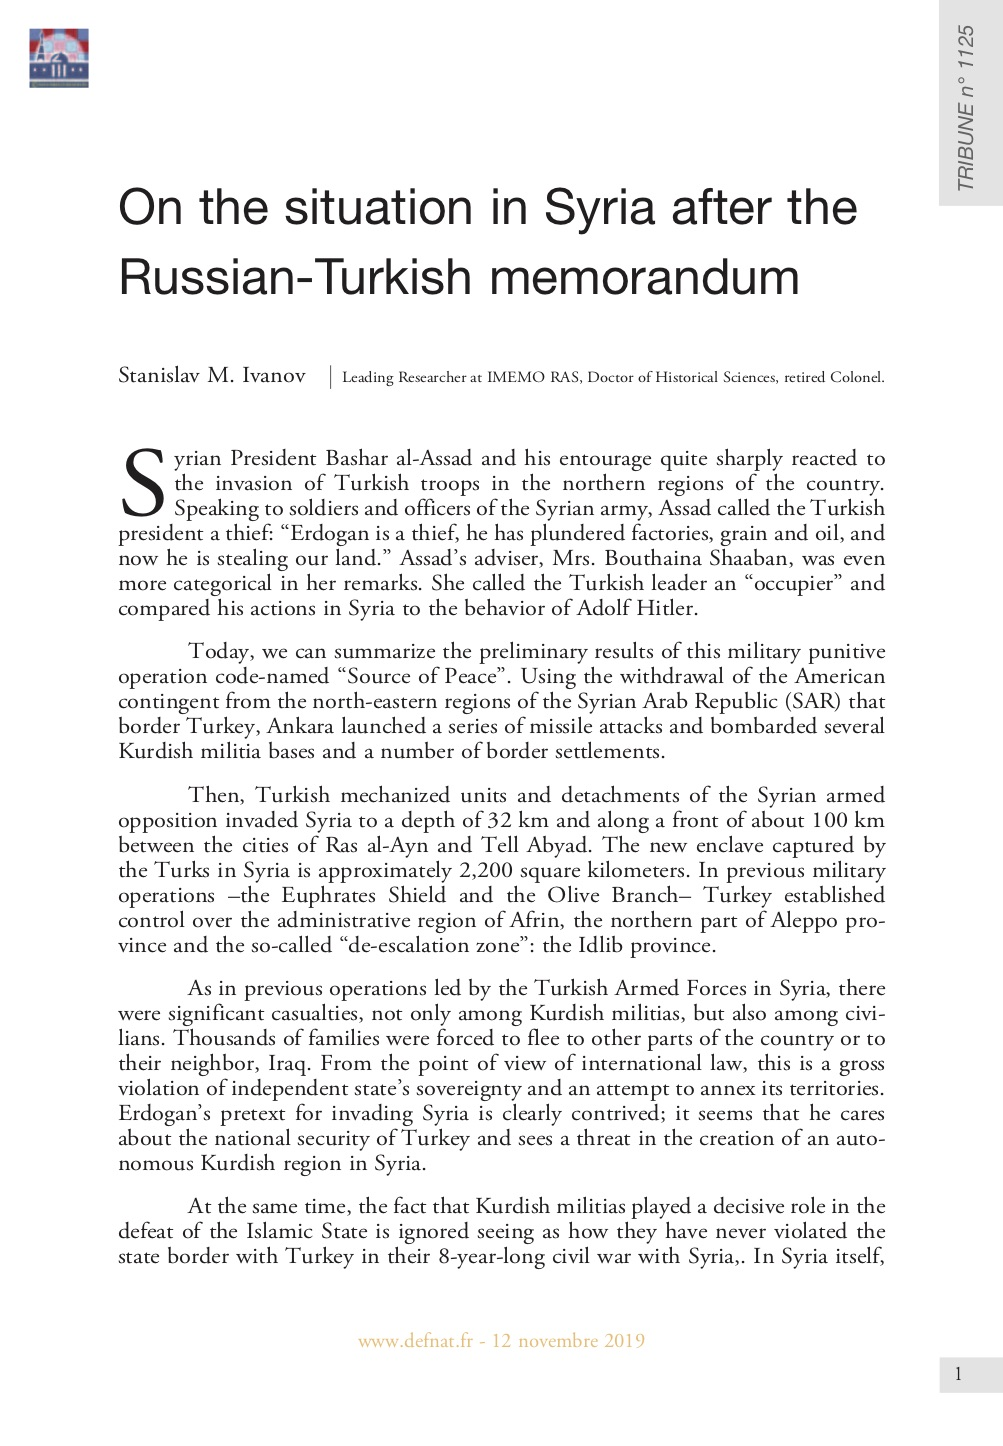 On the situation in Syria after the Russian-Turkish memorandum (T 1125)